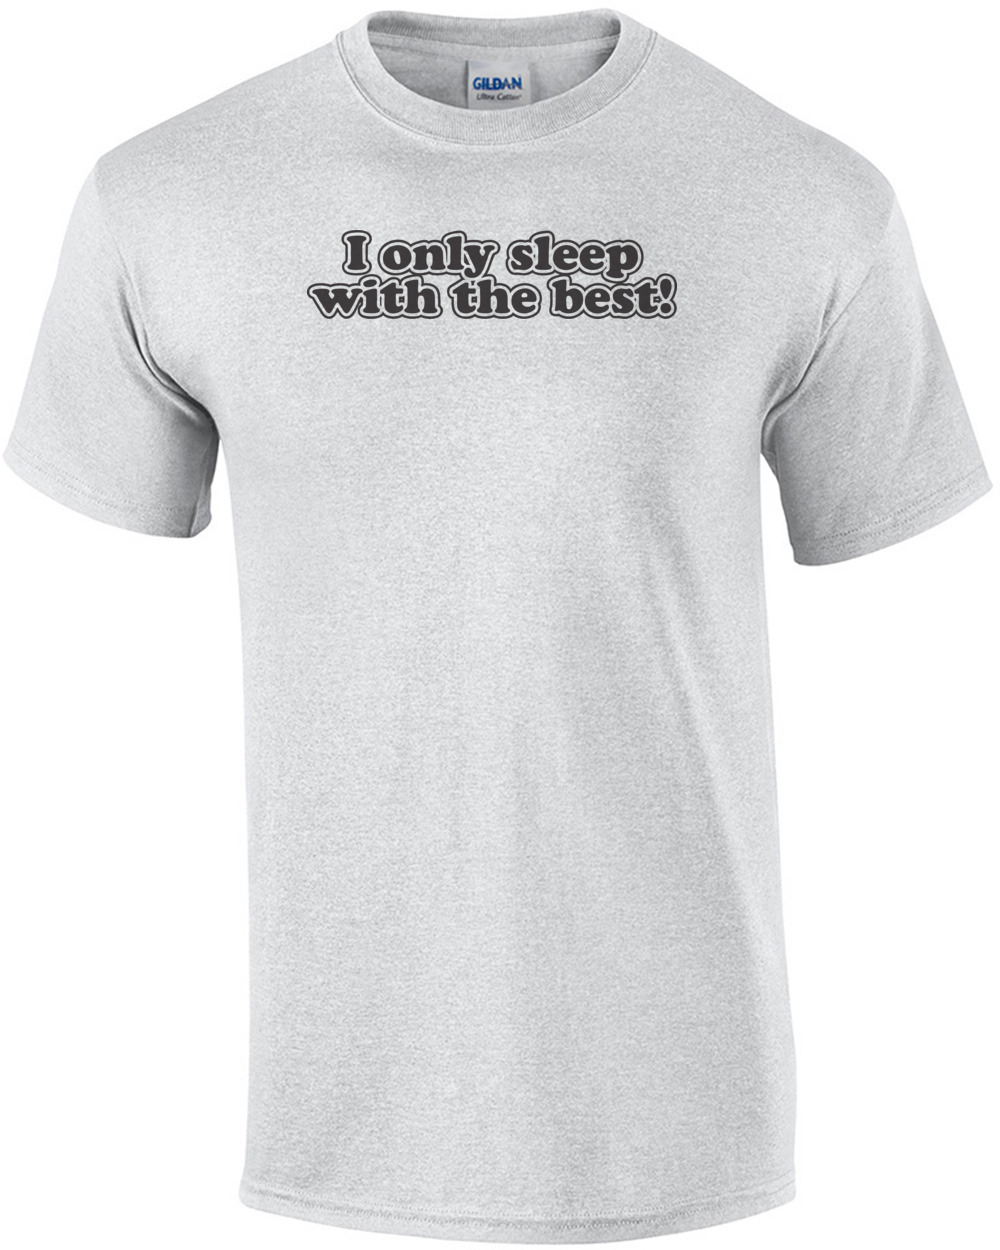 I Only Sleep With The Best T Shirt